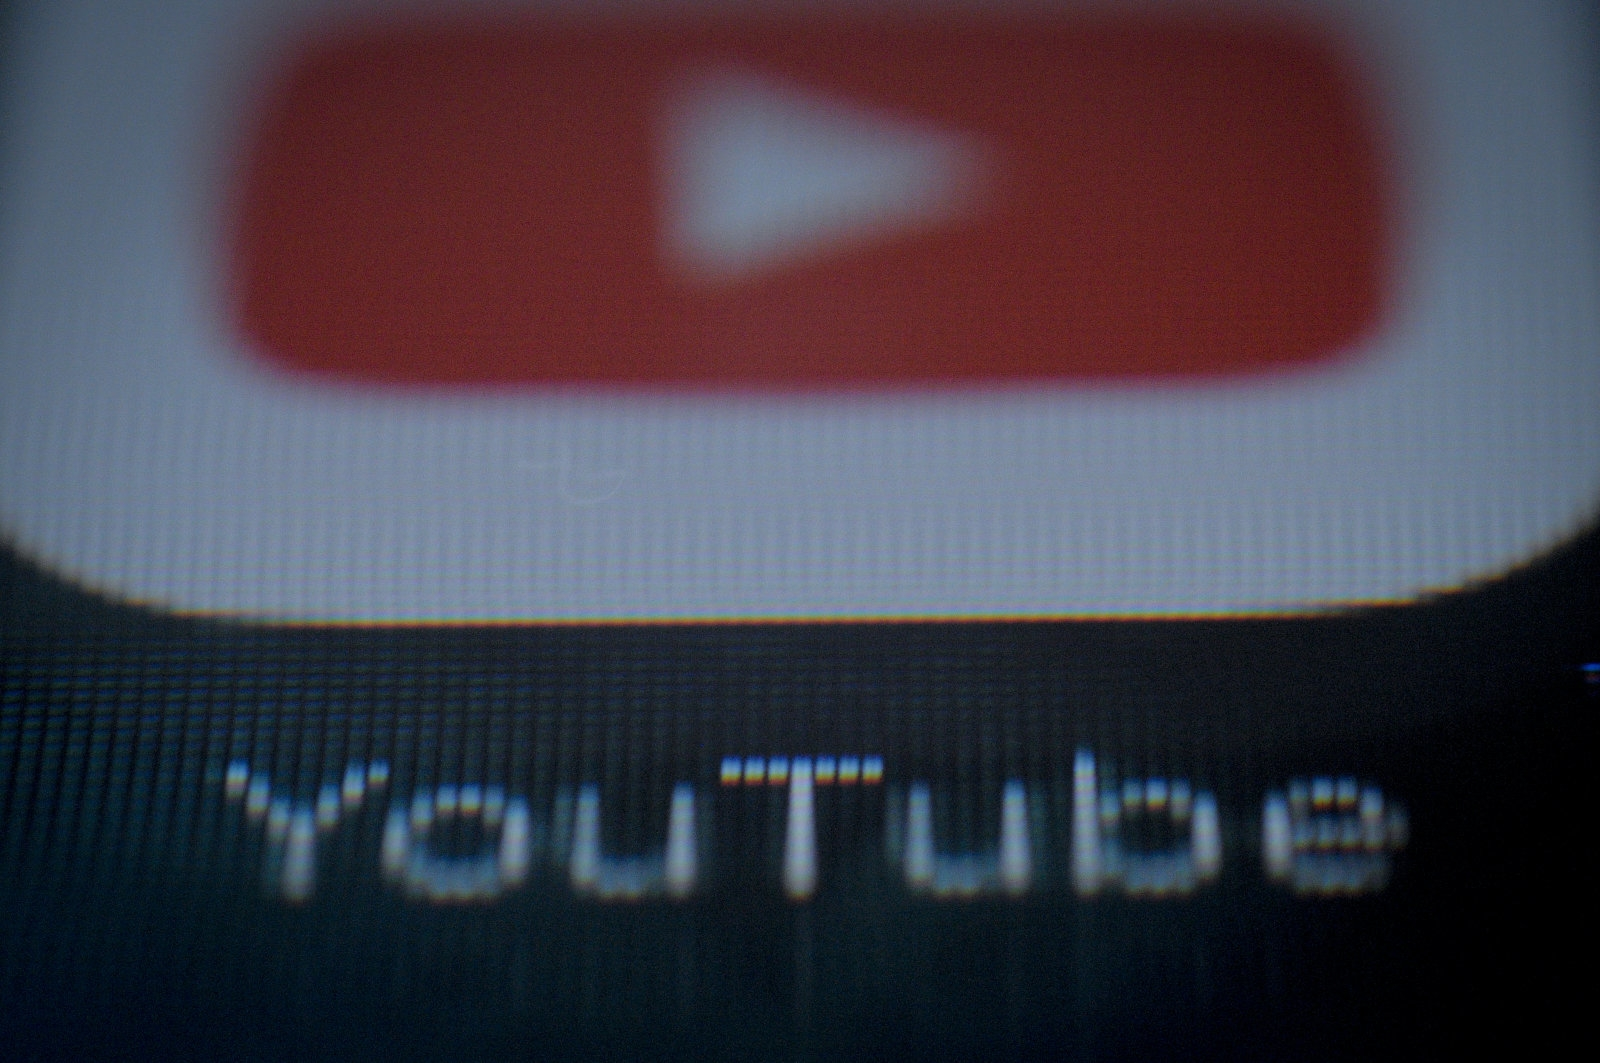 Companies pull ads from YouTube over comments in child videos | DeviceDaily.com